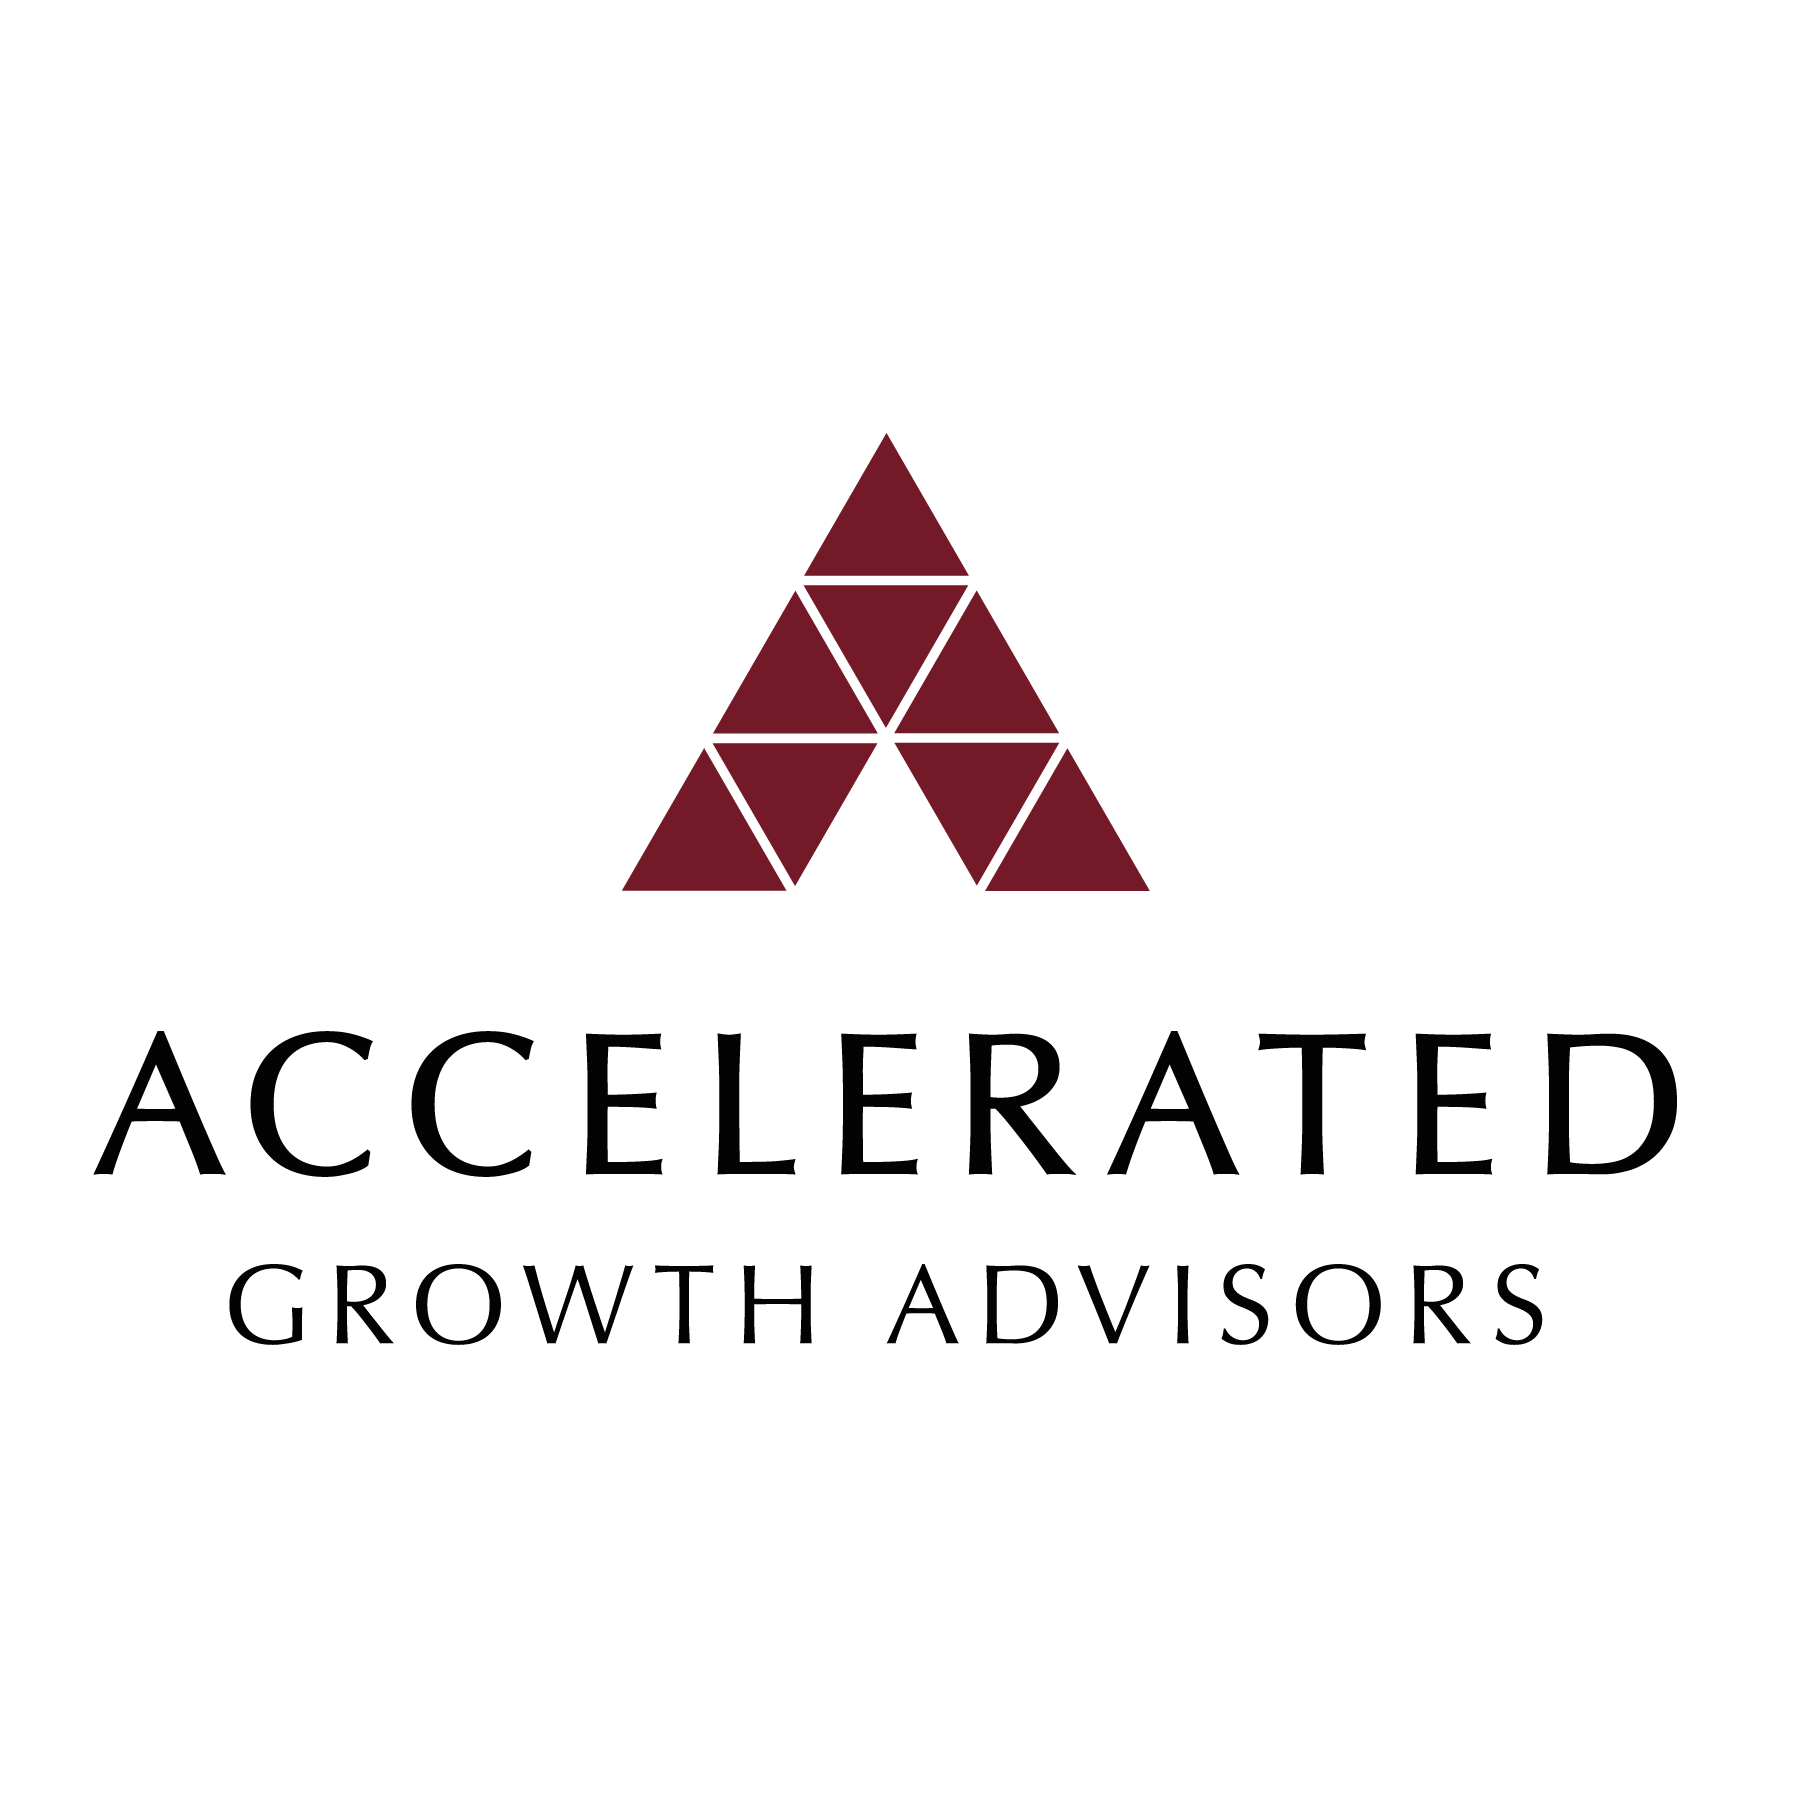 Accelerated Growth Advisors